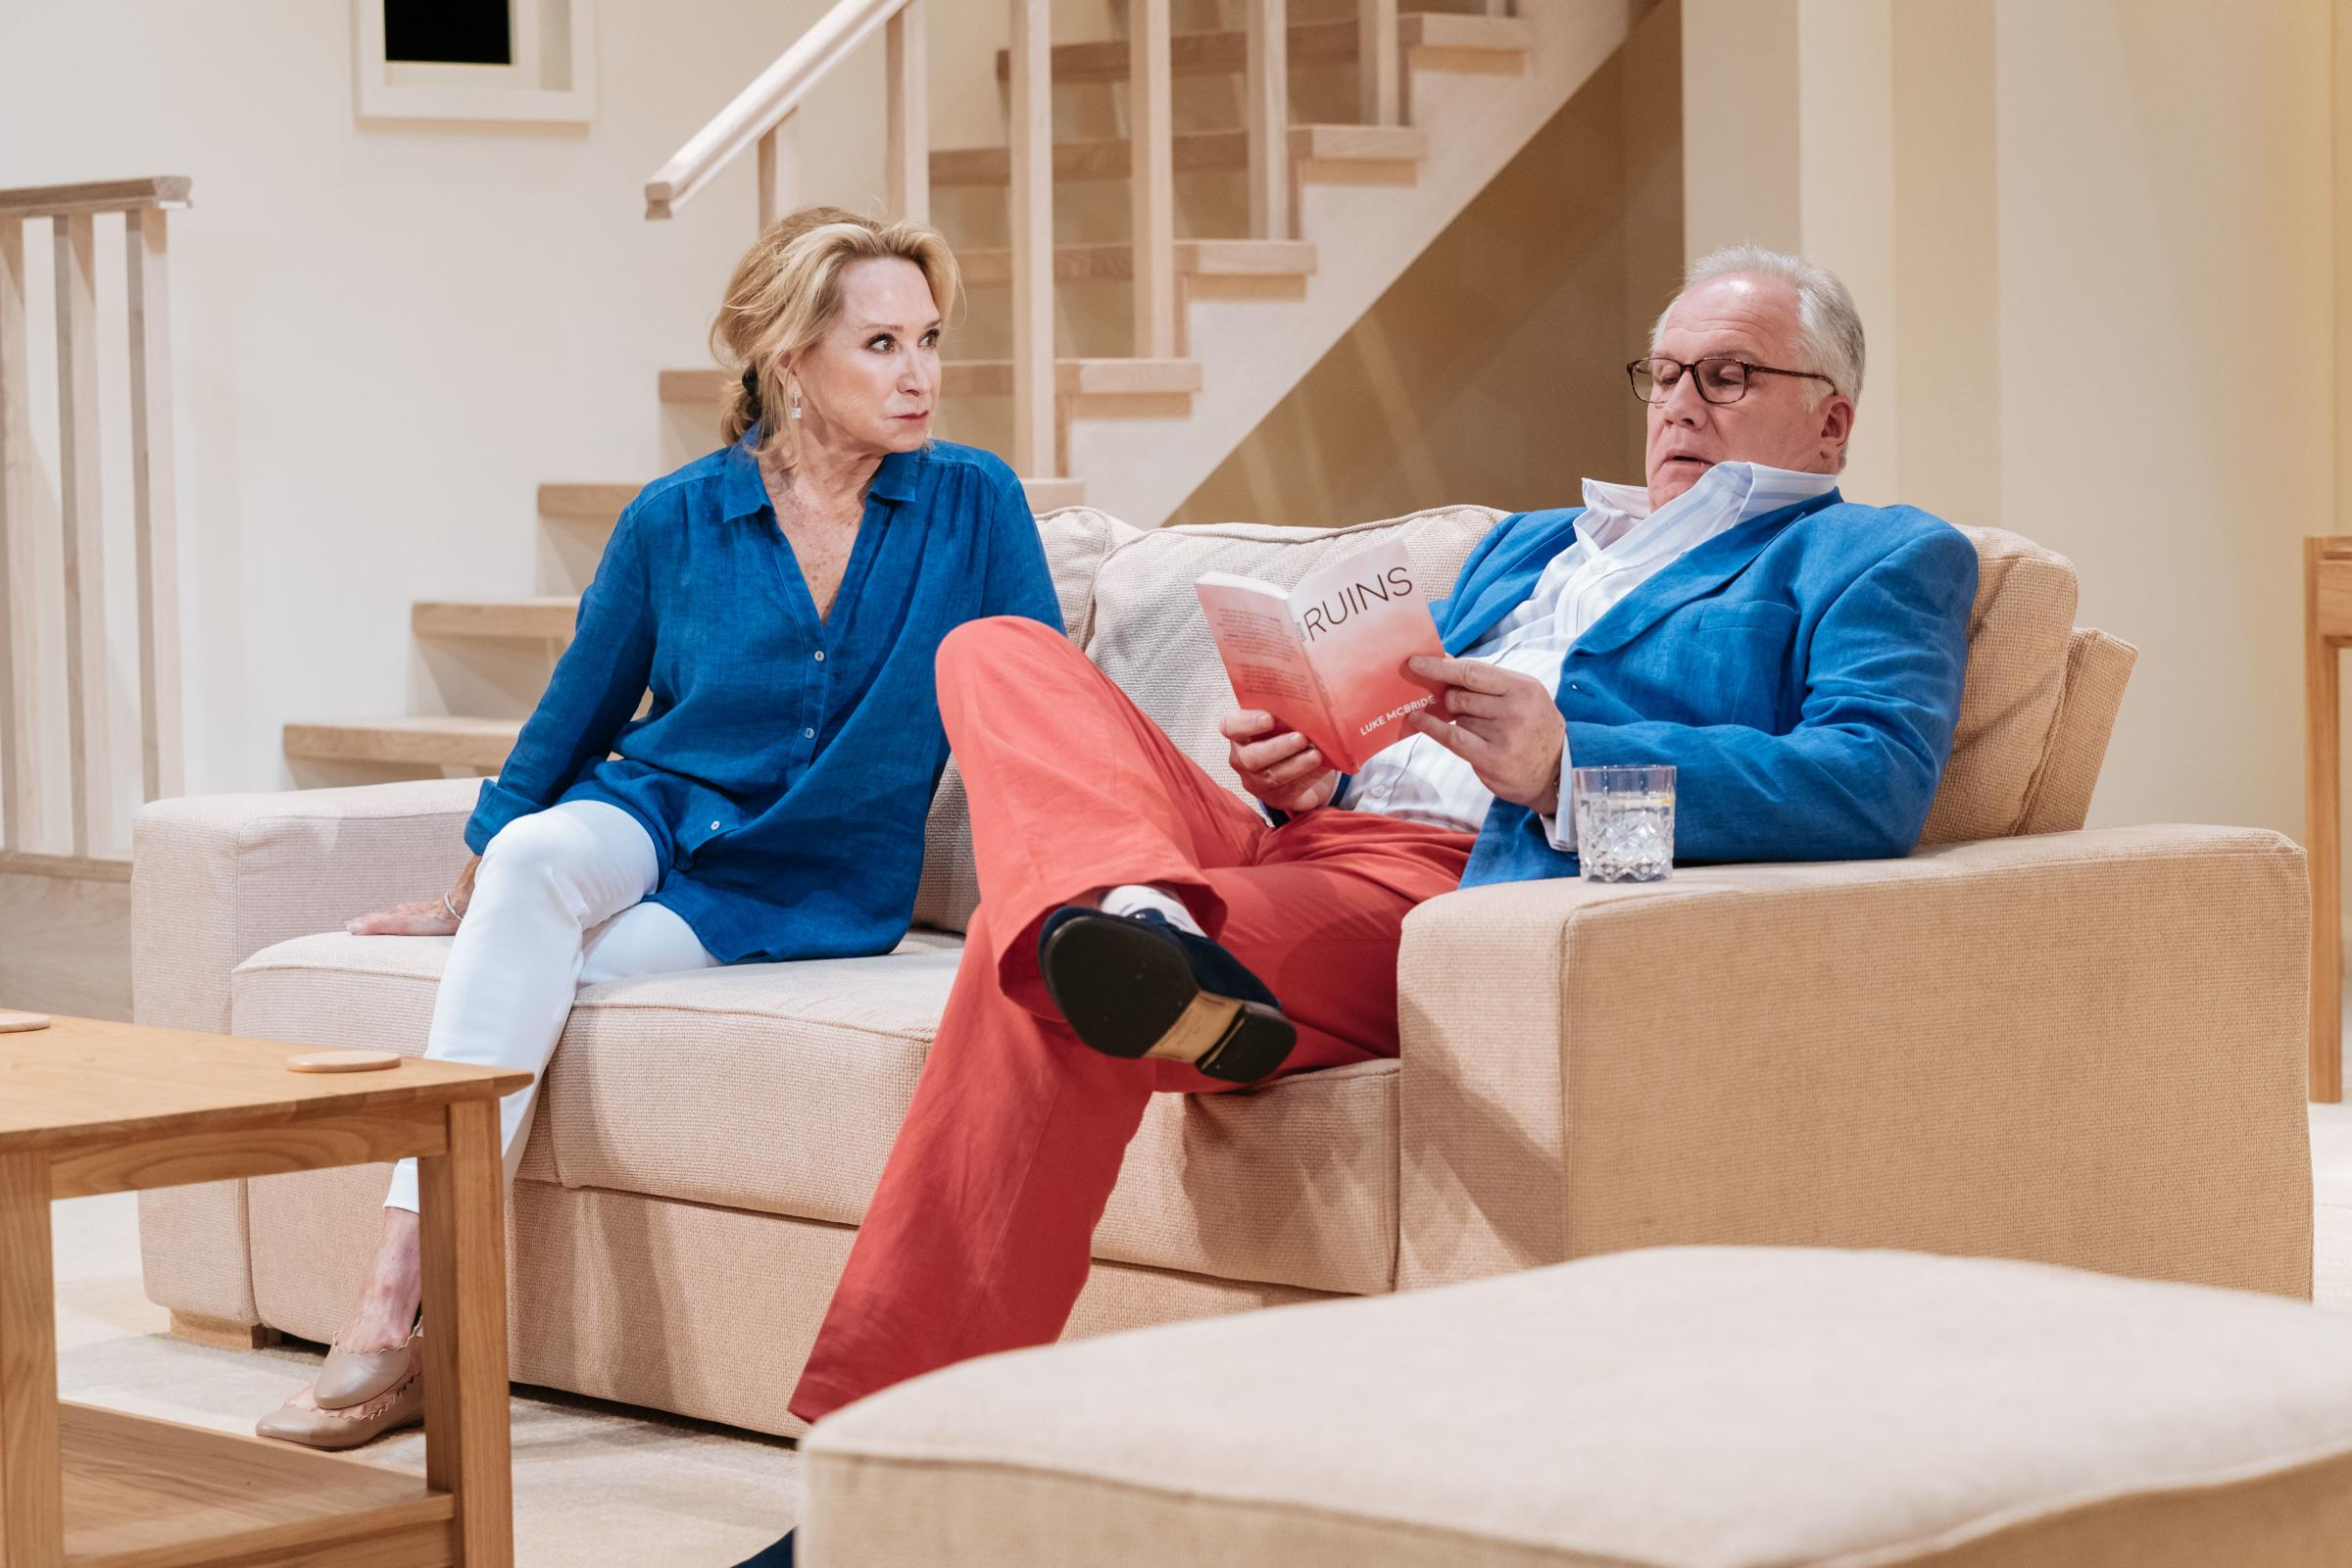 Theatre review: The Argument, starring Felicity Kendal